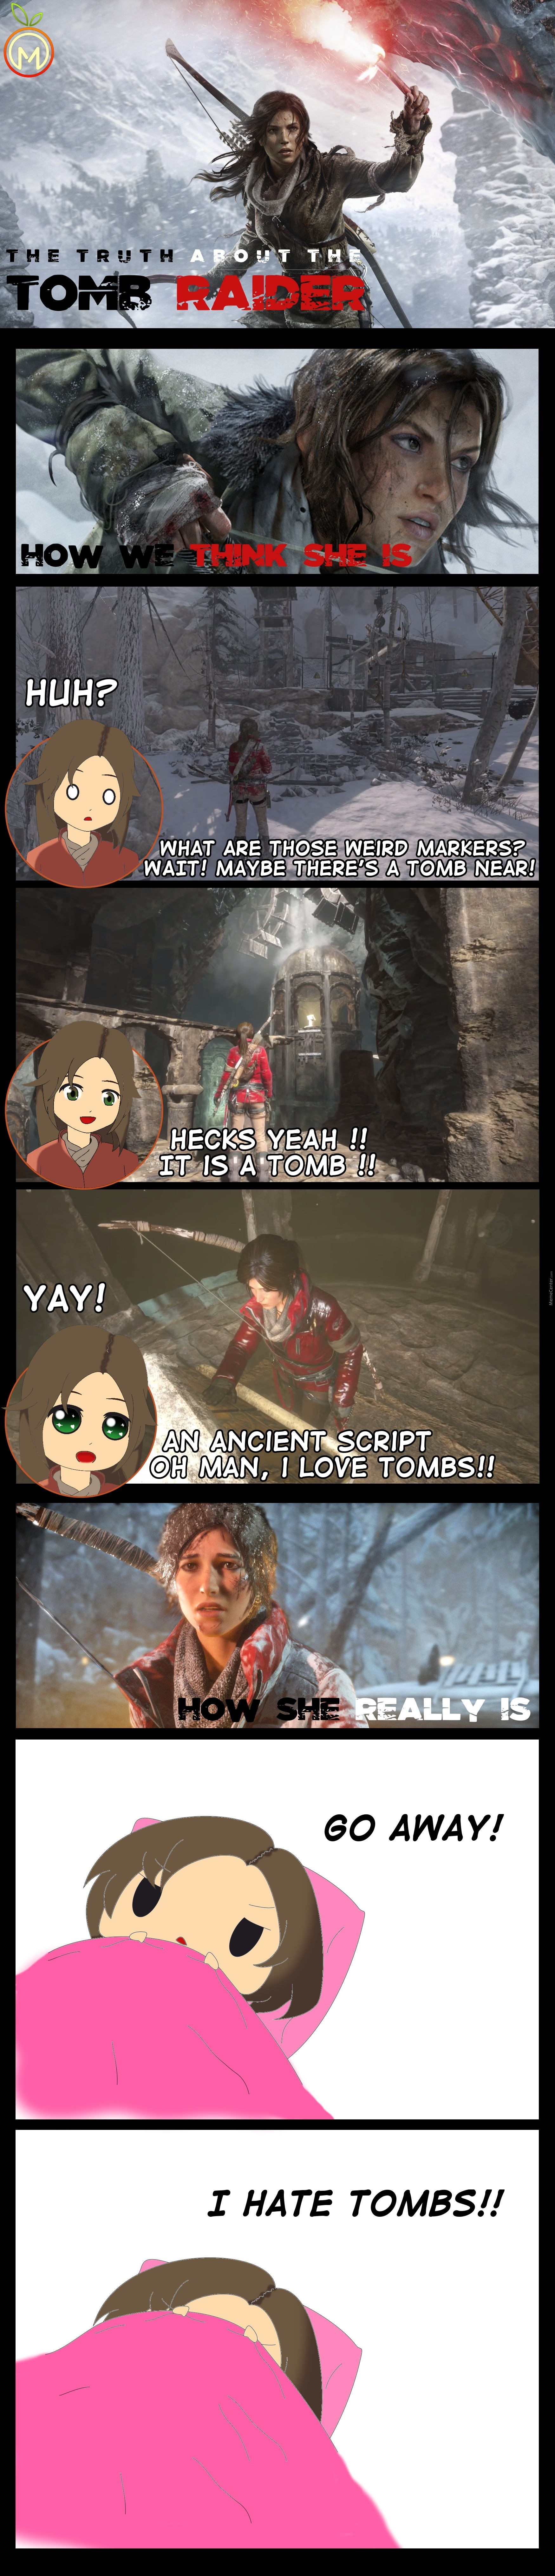 The Truth About The Tomb Raider